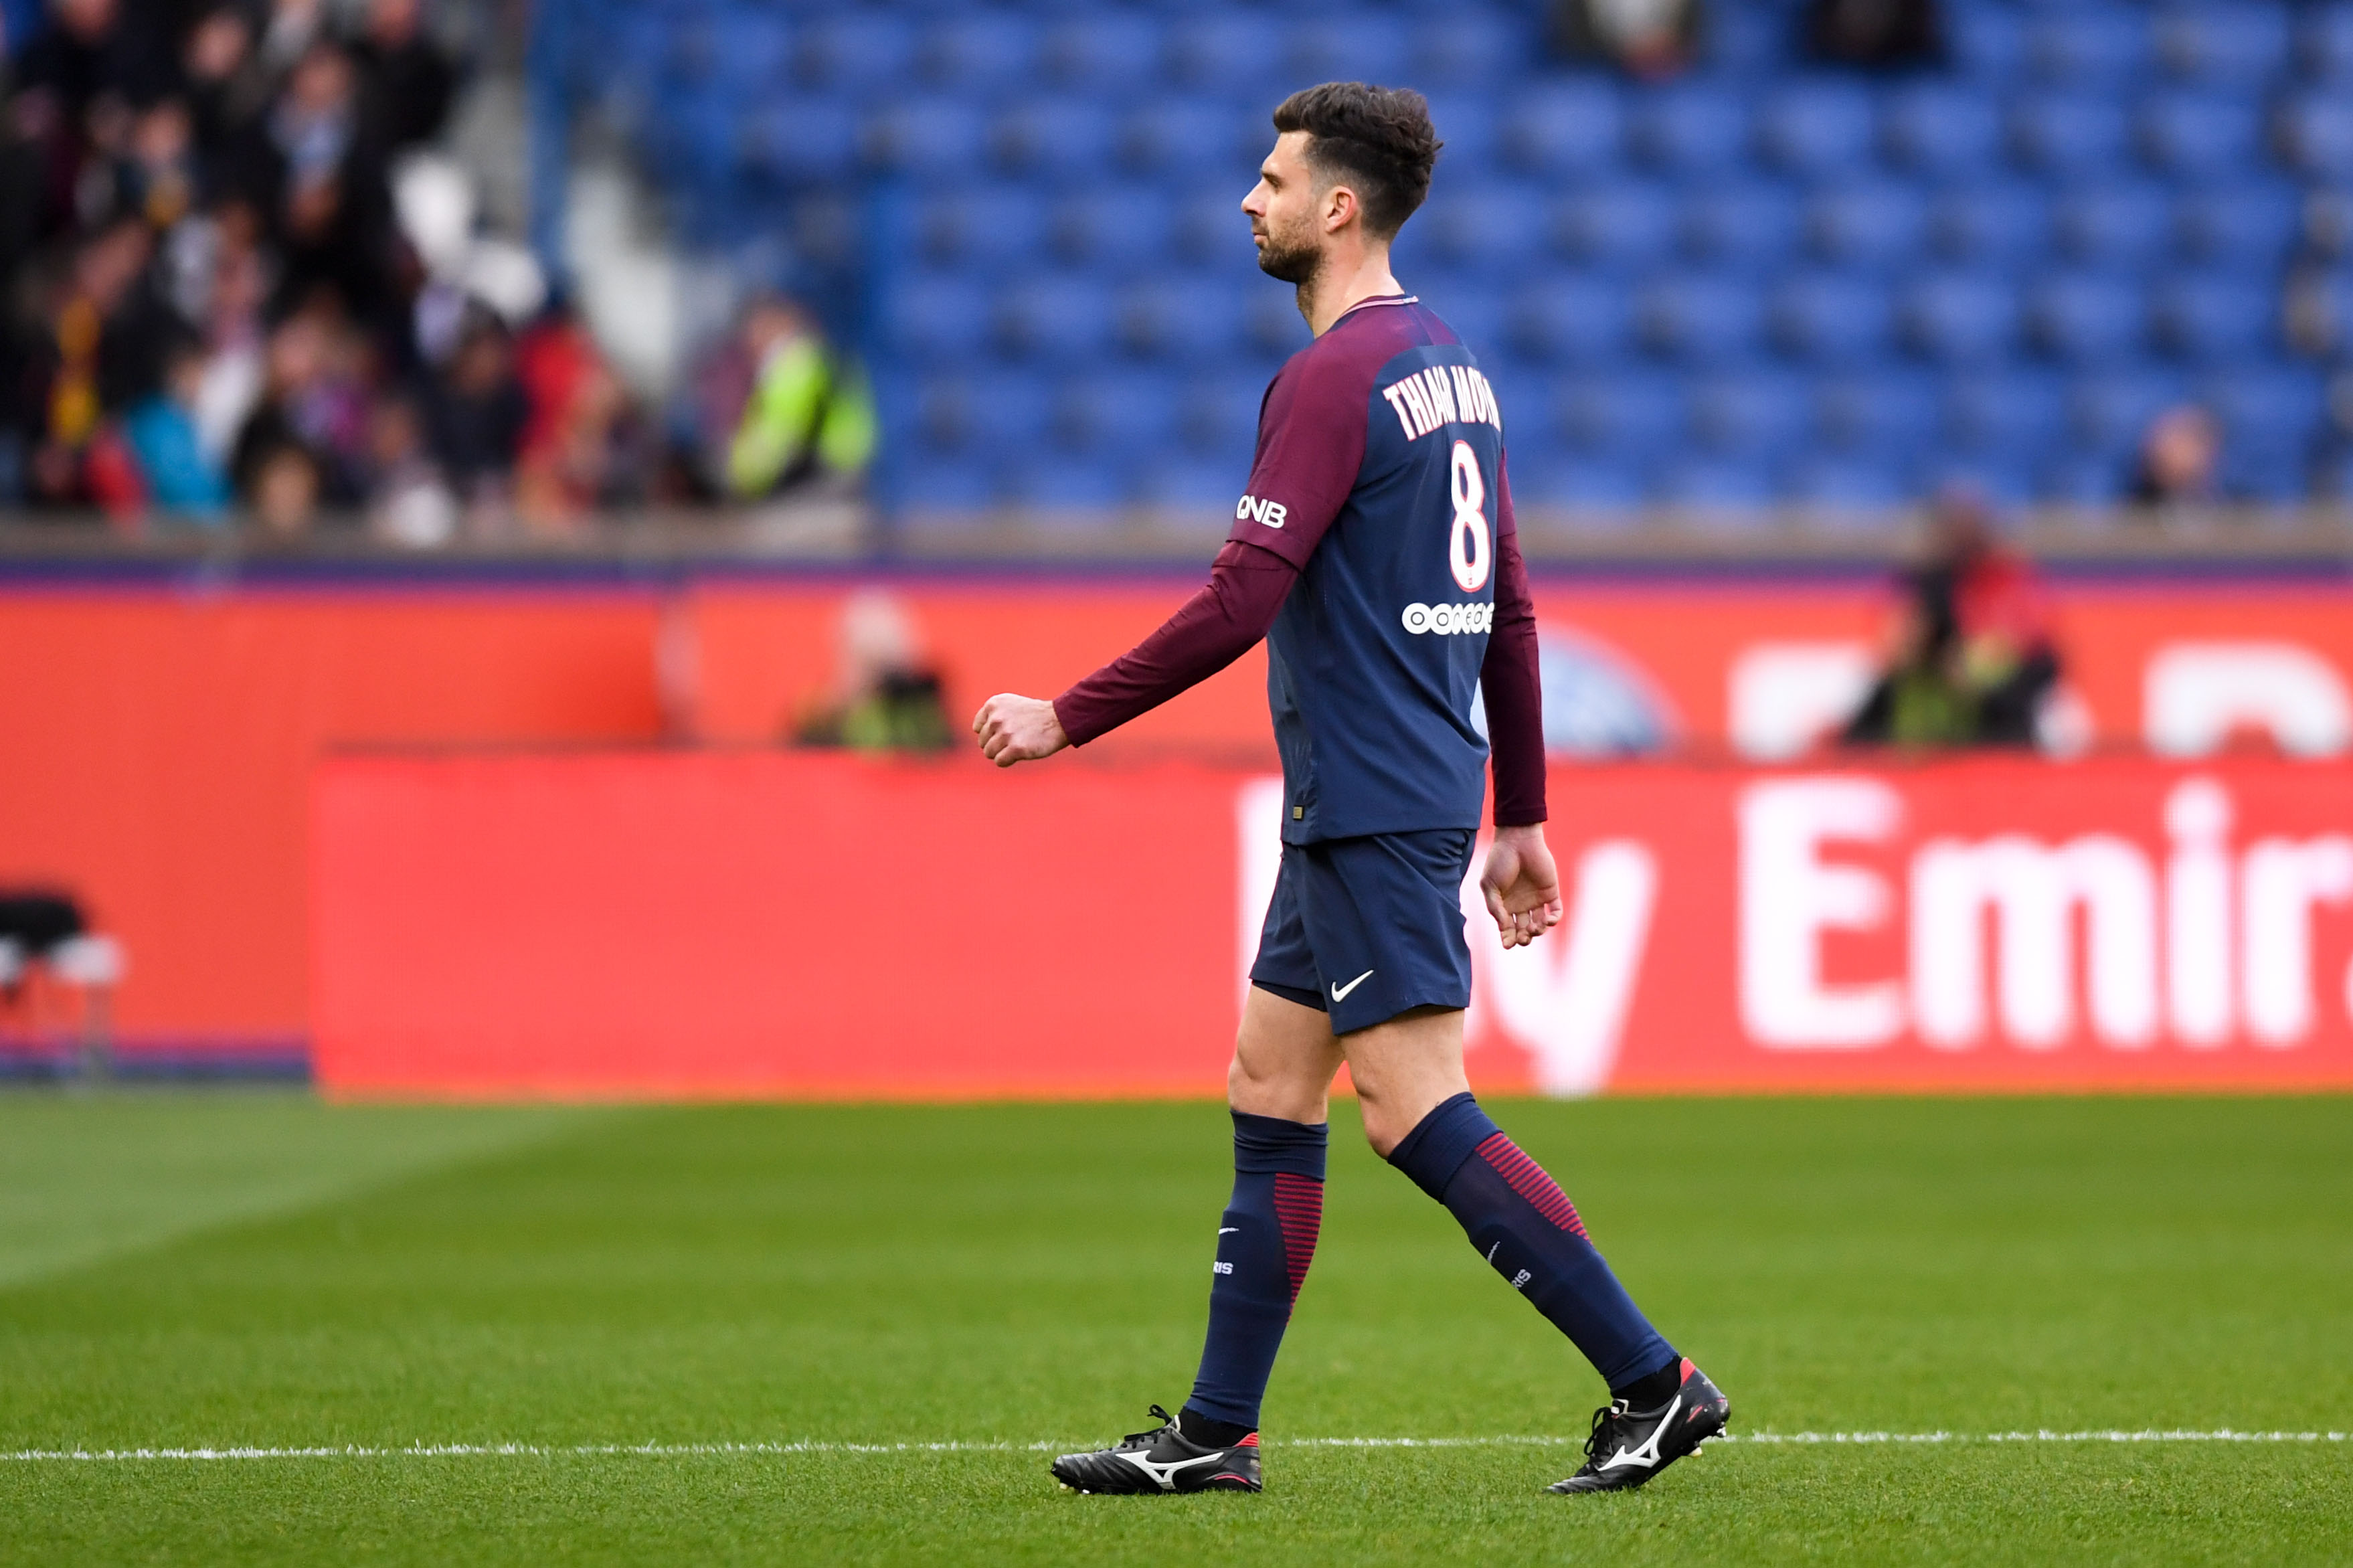 Pas de finale de la coupe de la ligue pour thiago motta suspendu 3 matches coupe de la ligue - Match de la coupe de la ligue ...